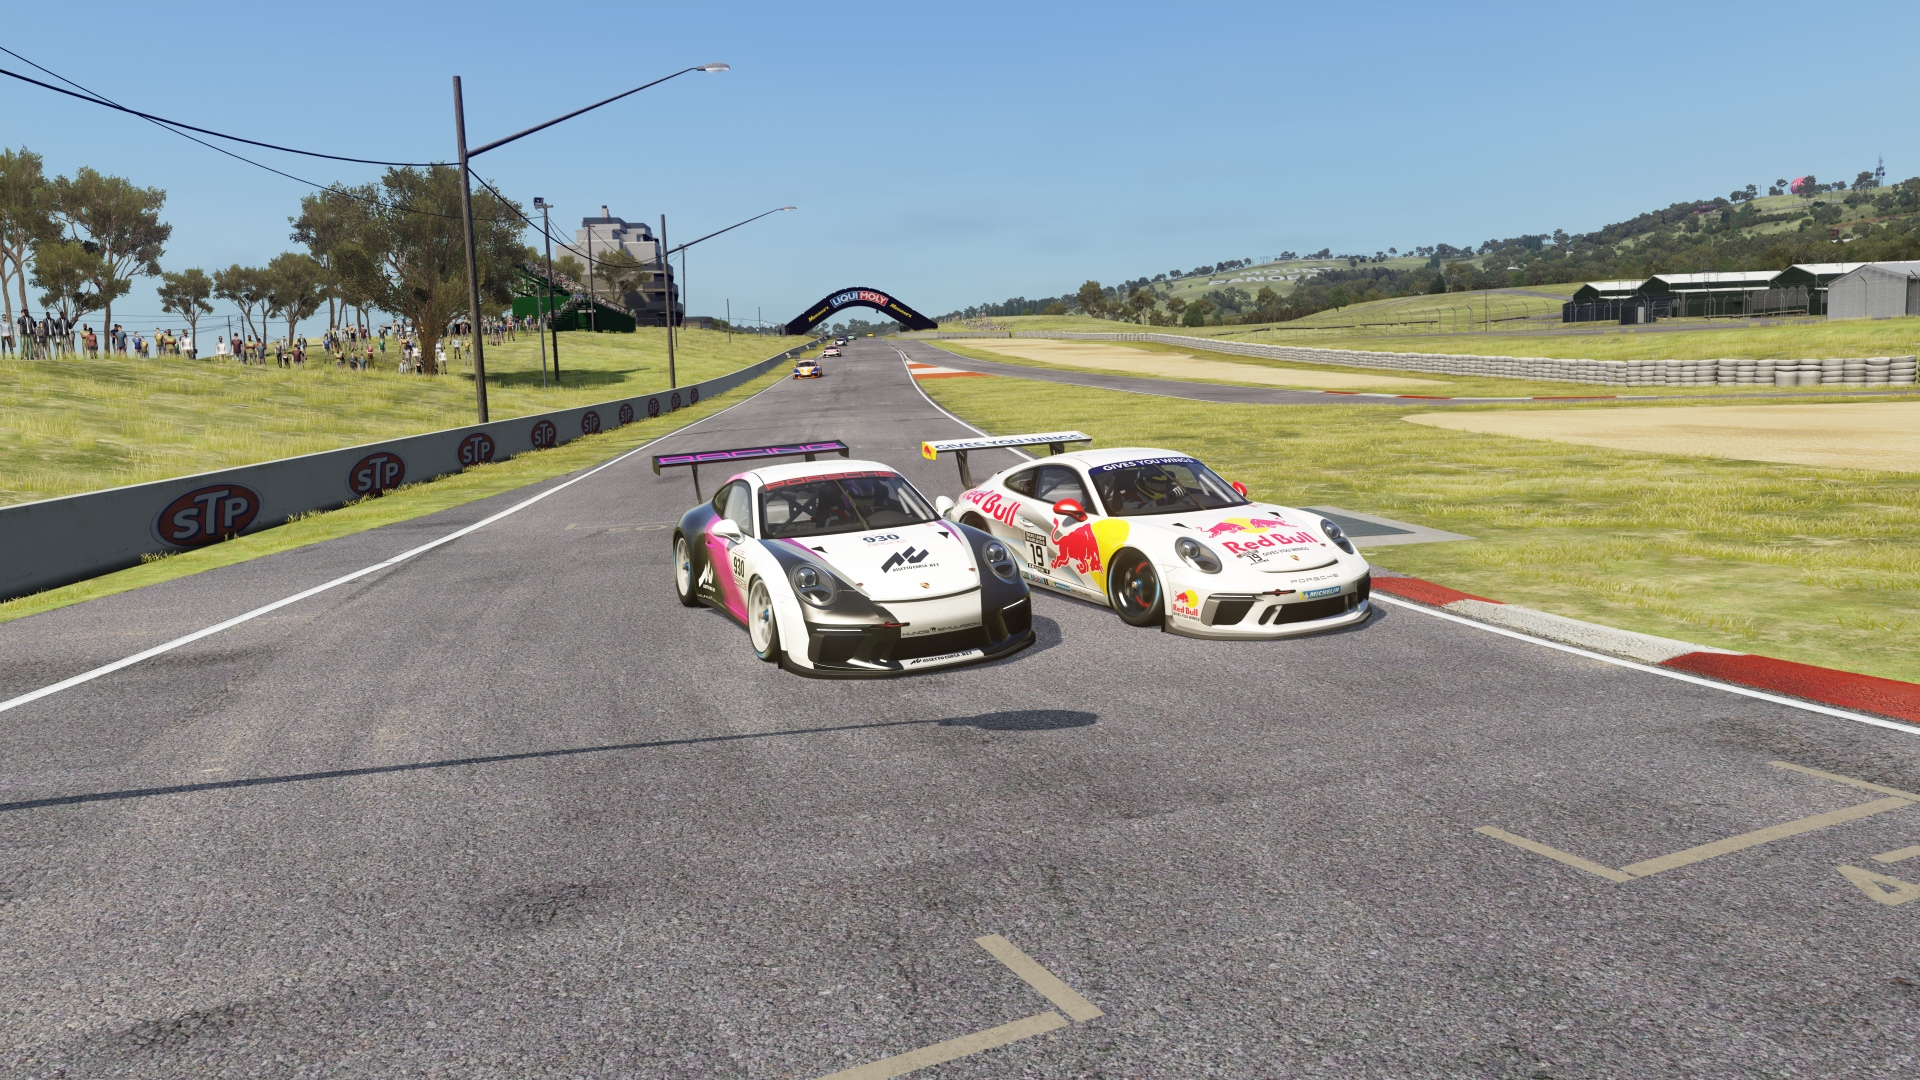 Screenshot_ks_porsche_911_gt3_cup_2017_bathurst_fm7_30-9-119-12-35-20.jpg